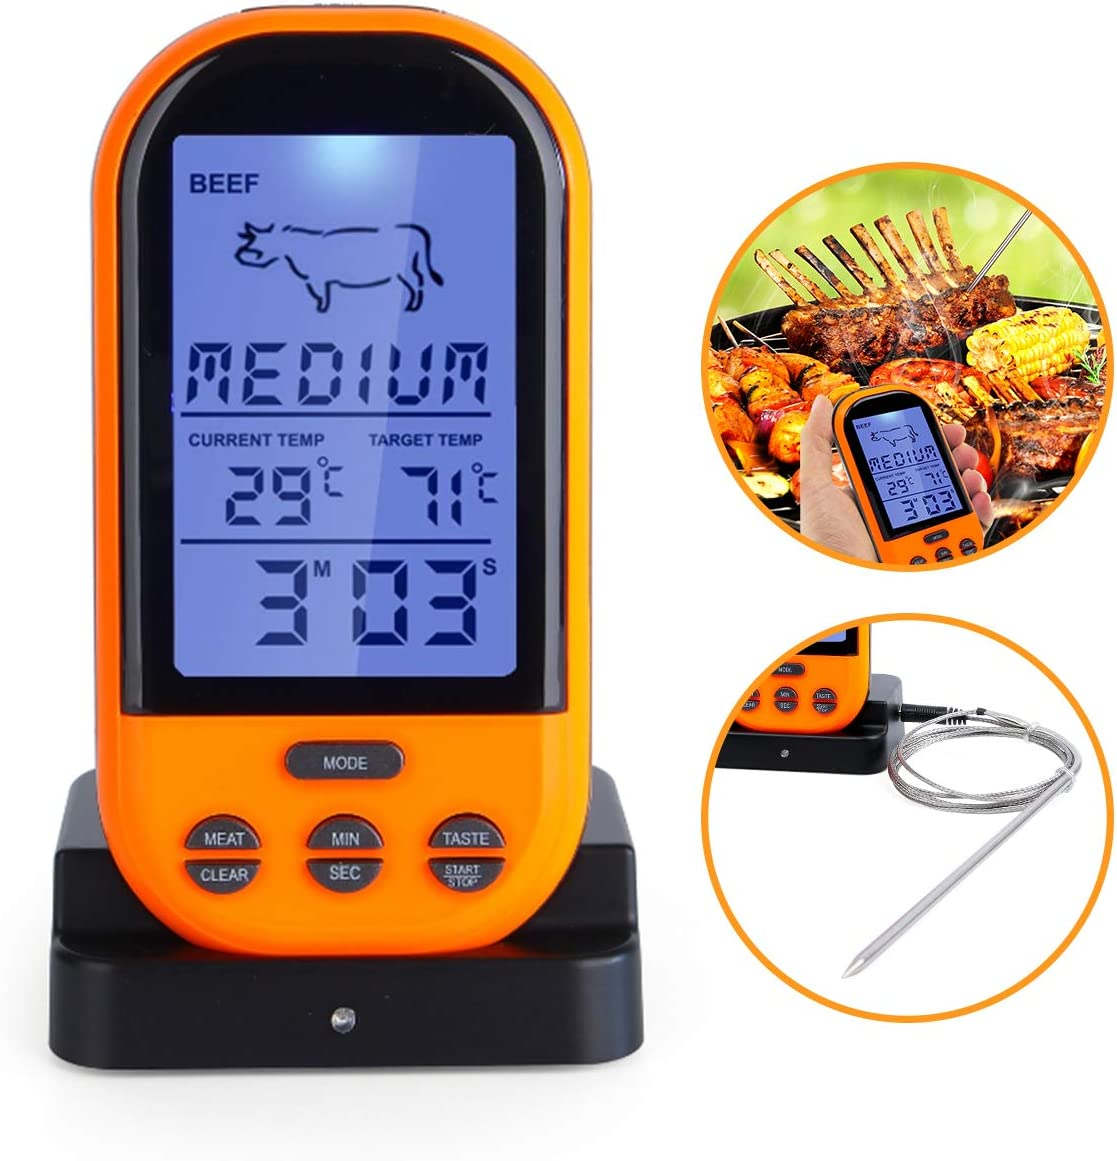 Wireless Meat Thermometer, BBQ Grill Waterproof Digital Cooking Food Thermometer Smart Remote Meat Grill Thermometers for Cooking, Barbeque, Smoker, Grilling, Oven, BBQ Kitchen